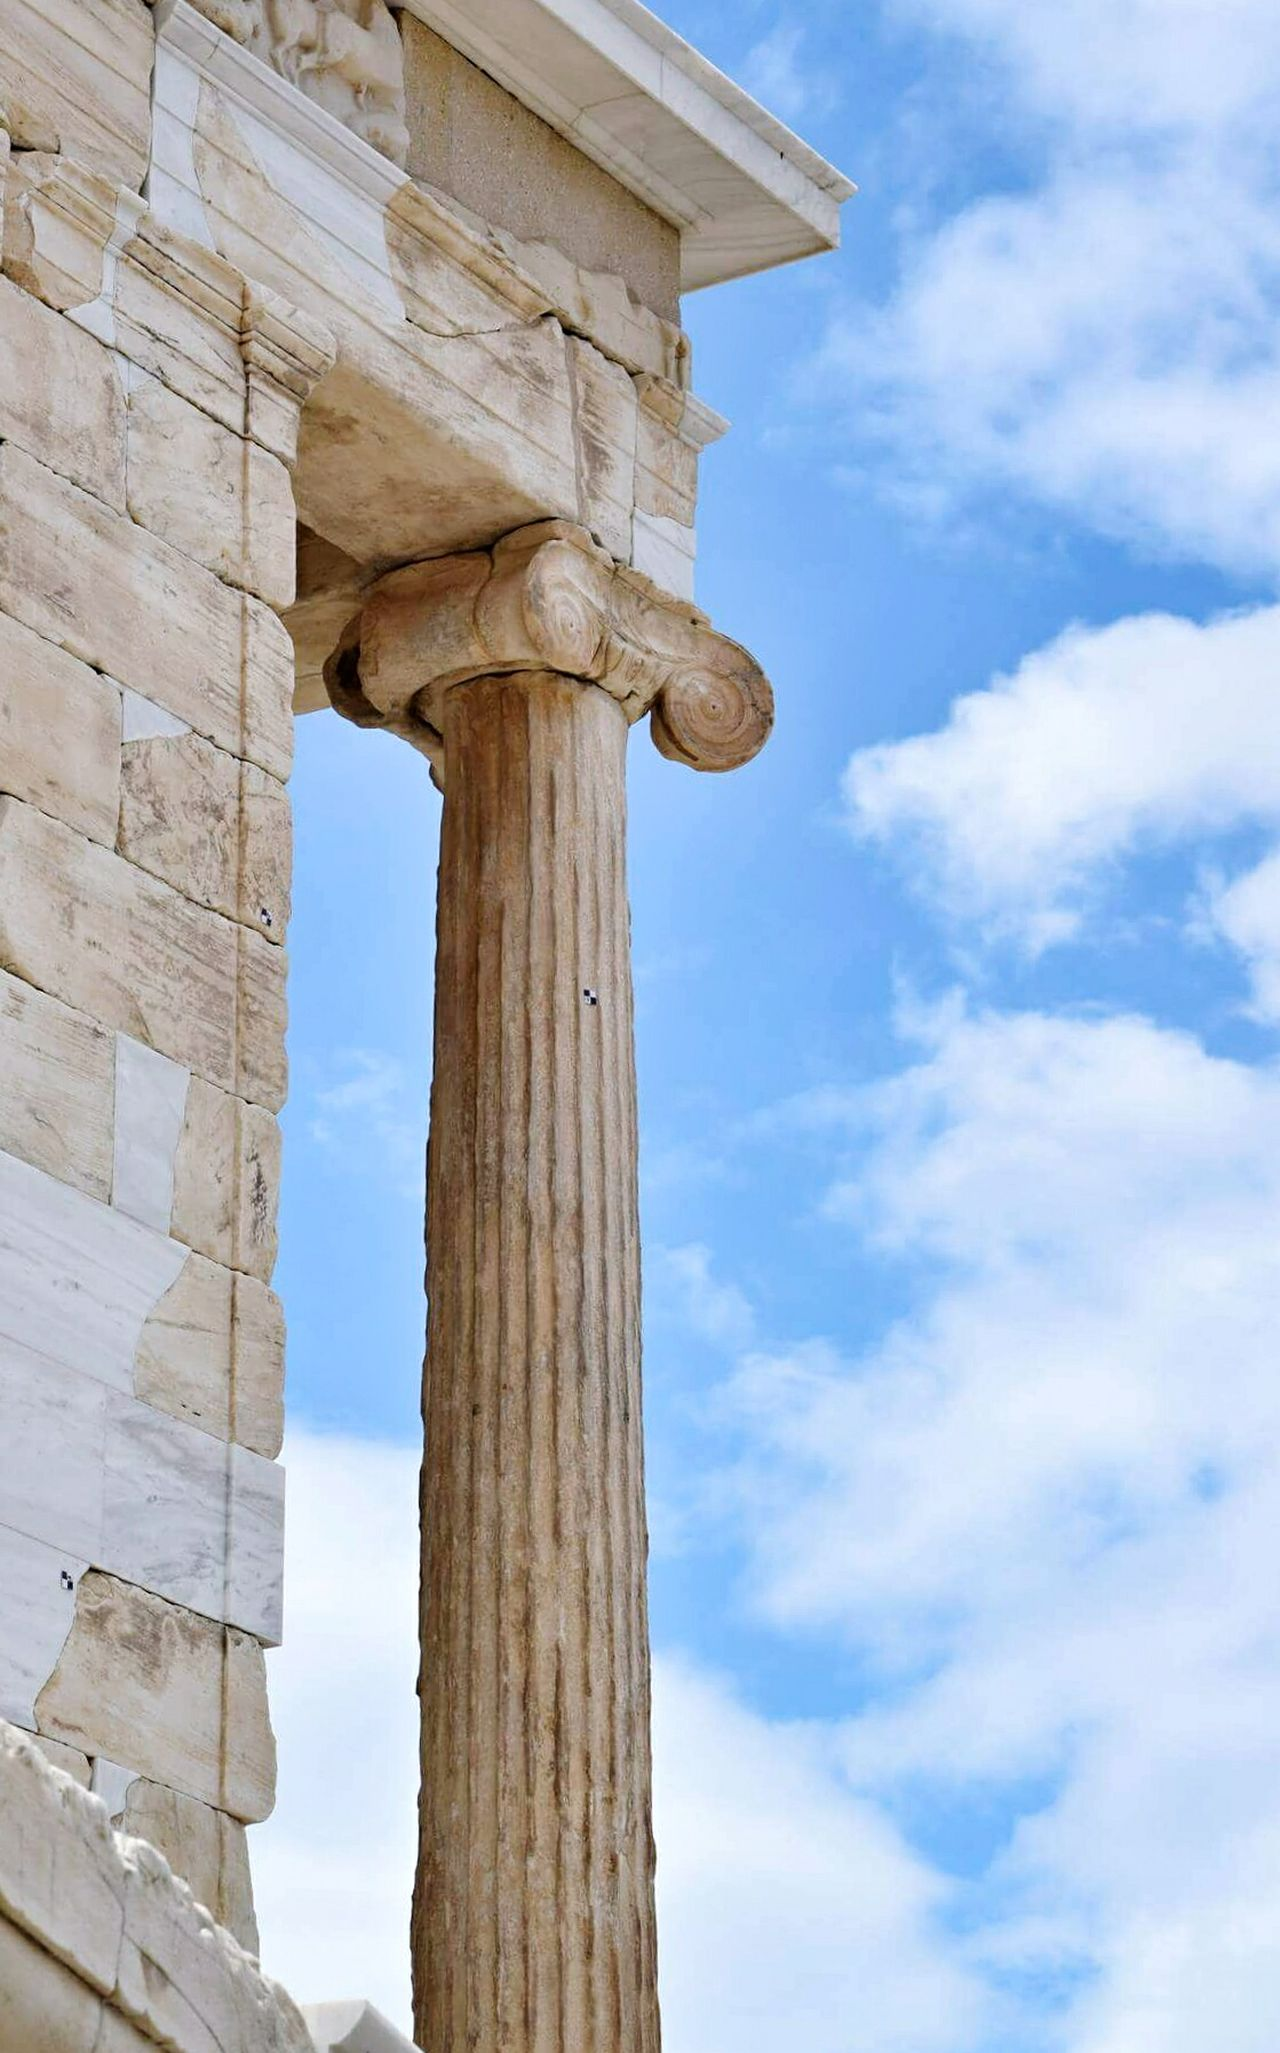 Athens,Greece. Architectural Column Old Ruin History Outdoors Sky Blue Architecture Cloud - Sky Close-up EyeEm Gallery Greece Eyeemphotography EyeEm Best Shots 3XSPUnity Photography EyeEmNewHere Travel Destinations Detailphotography Coloum Athens Greece Hellas No People Art Is Everywhere The Architect - 2017 EyeEm Awards